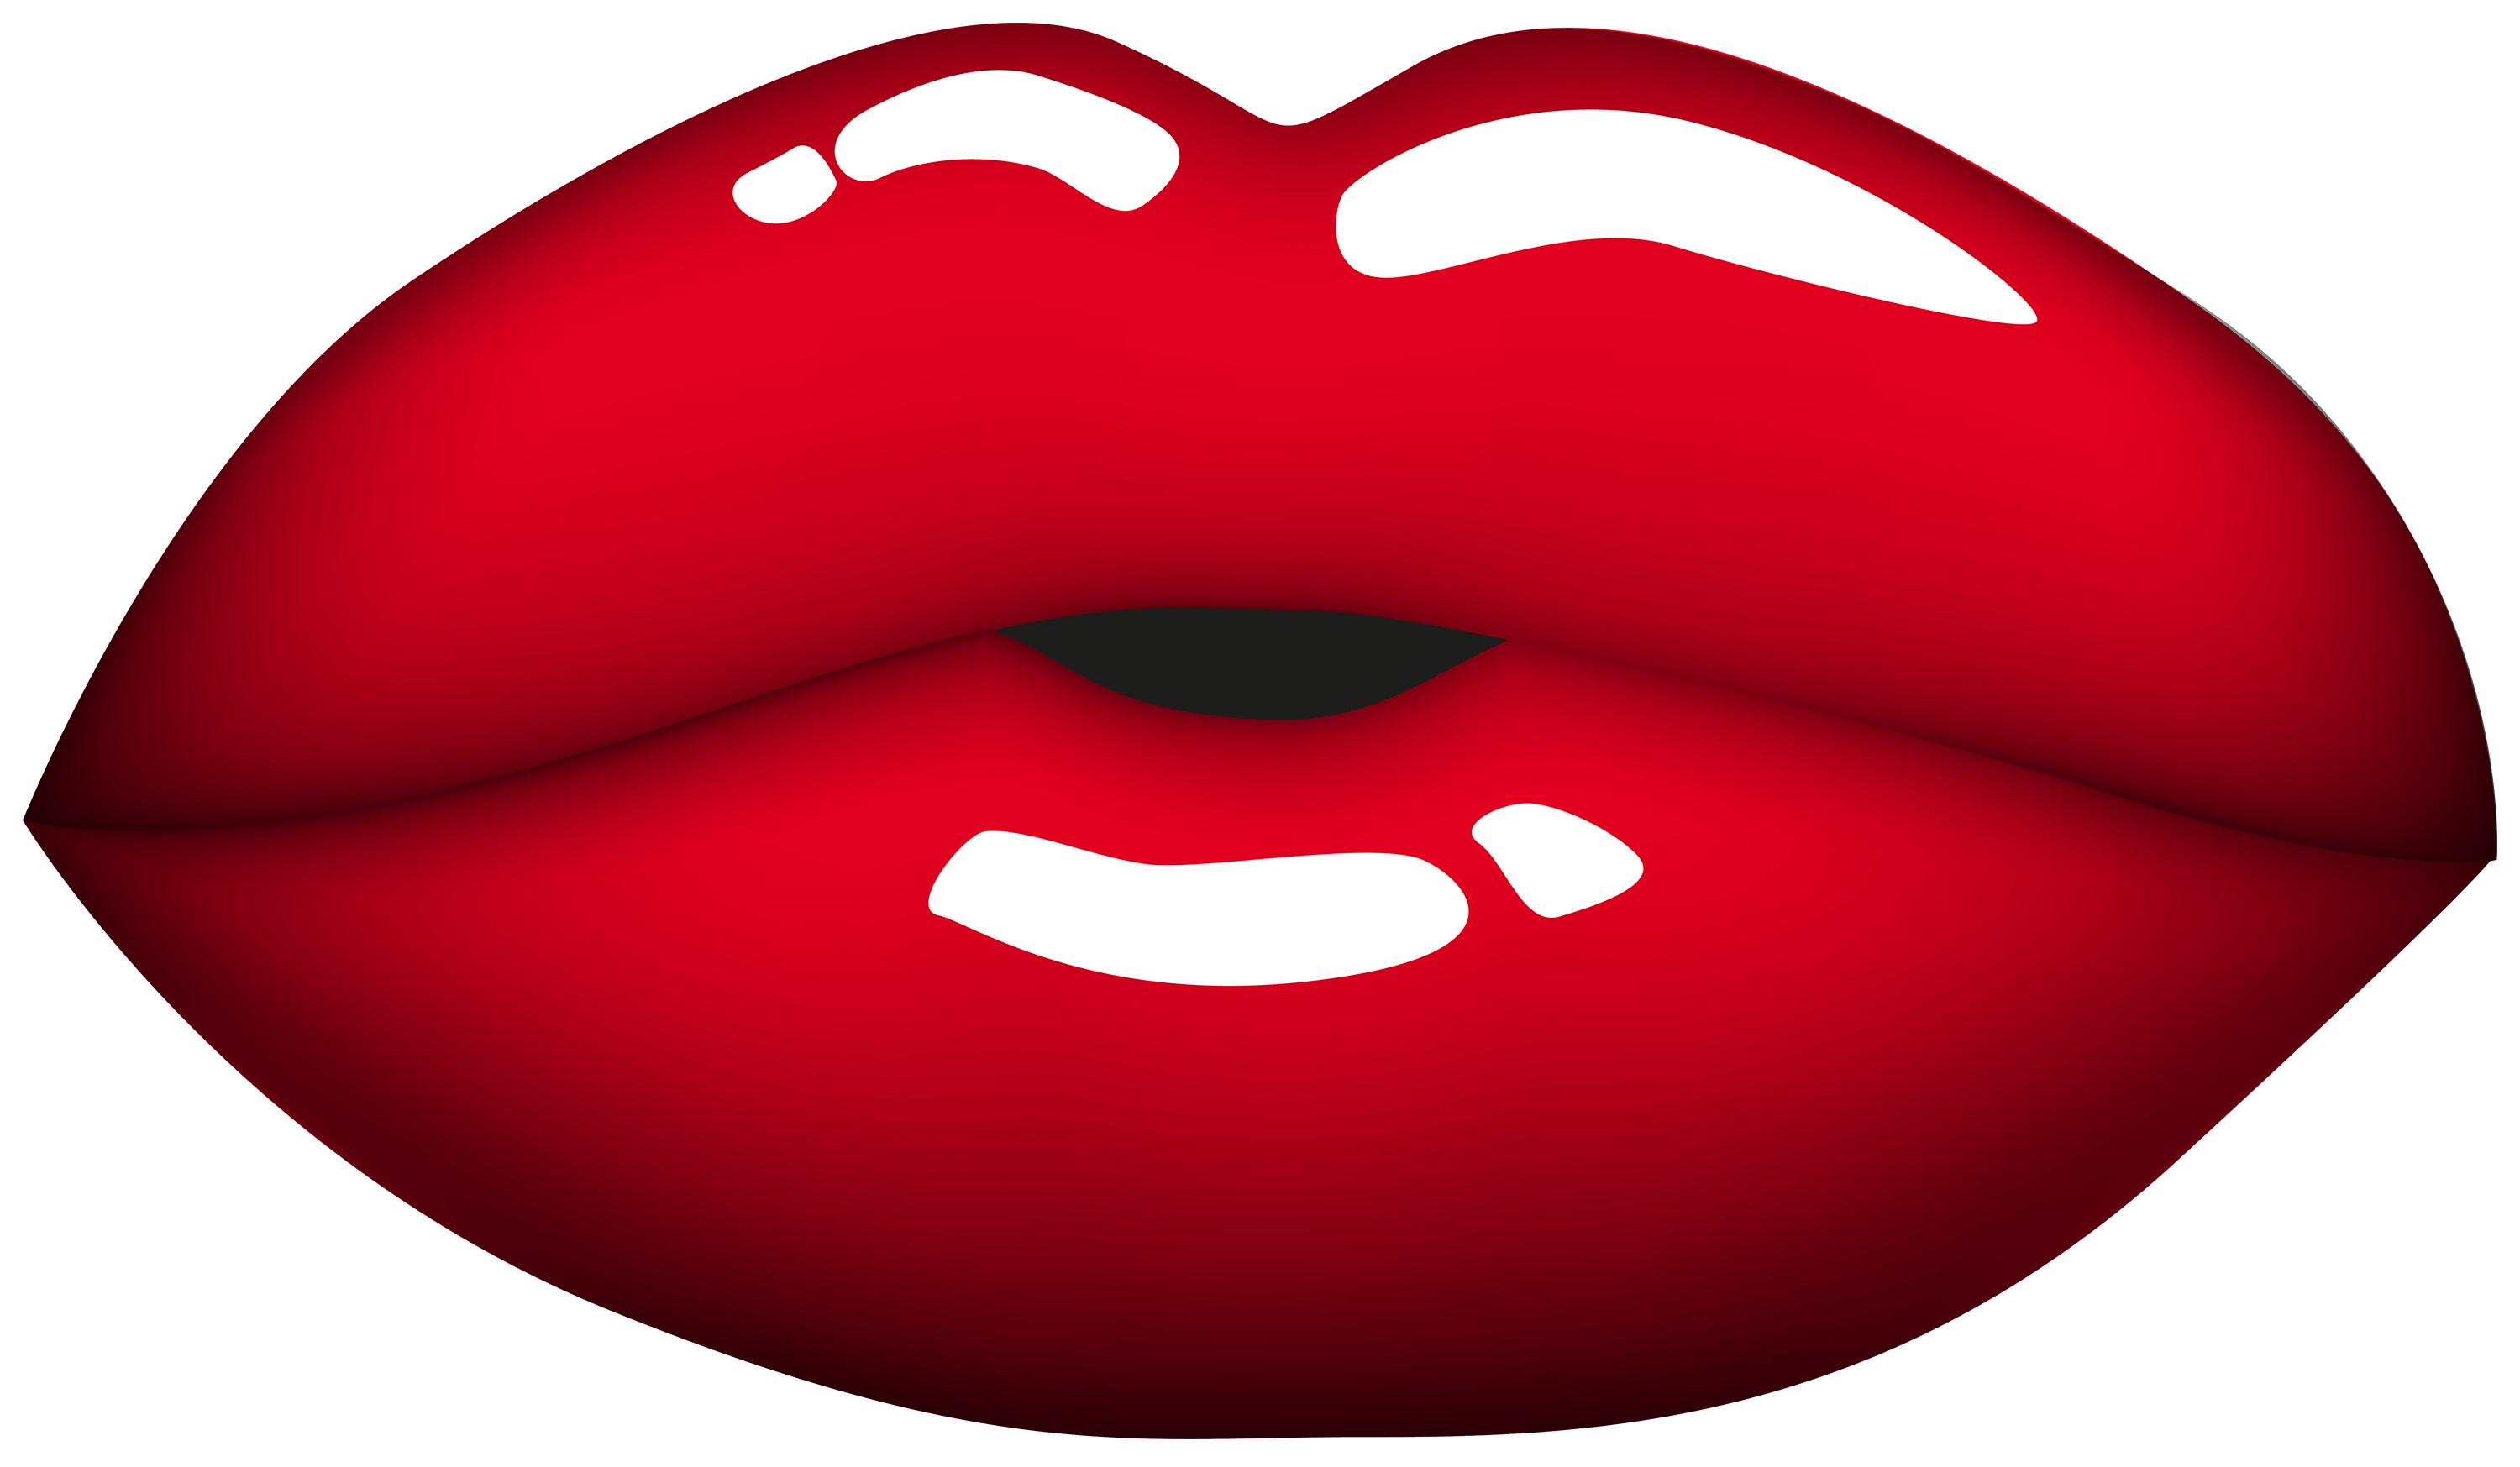 Red lips png. Clipart at getdrawings com